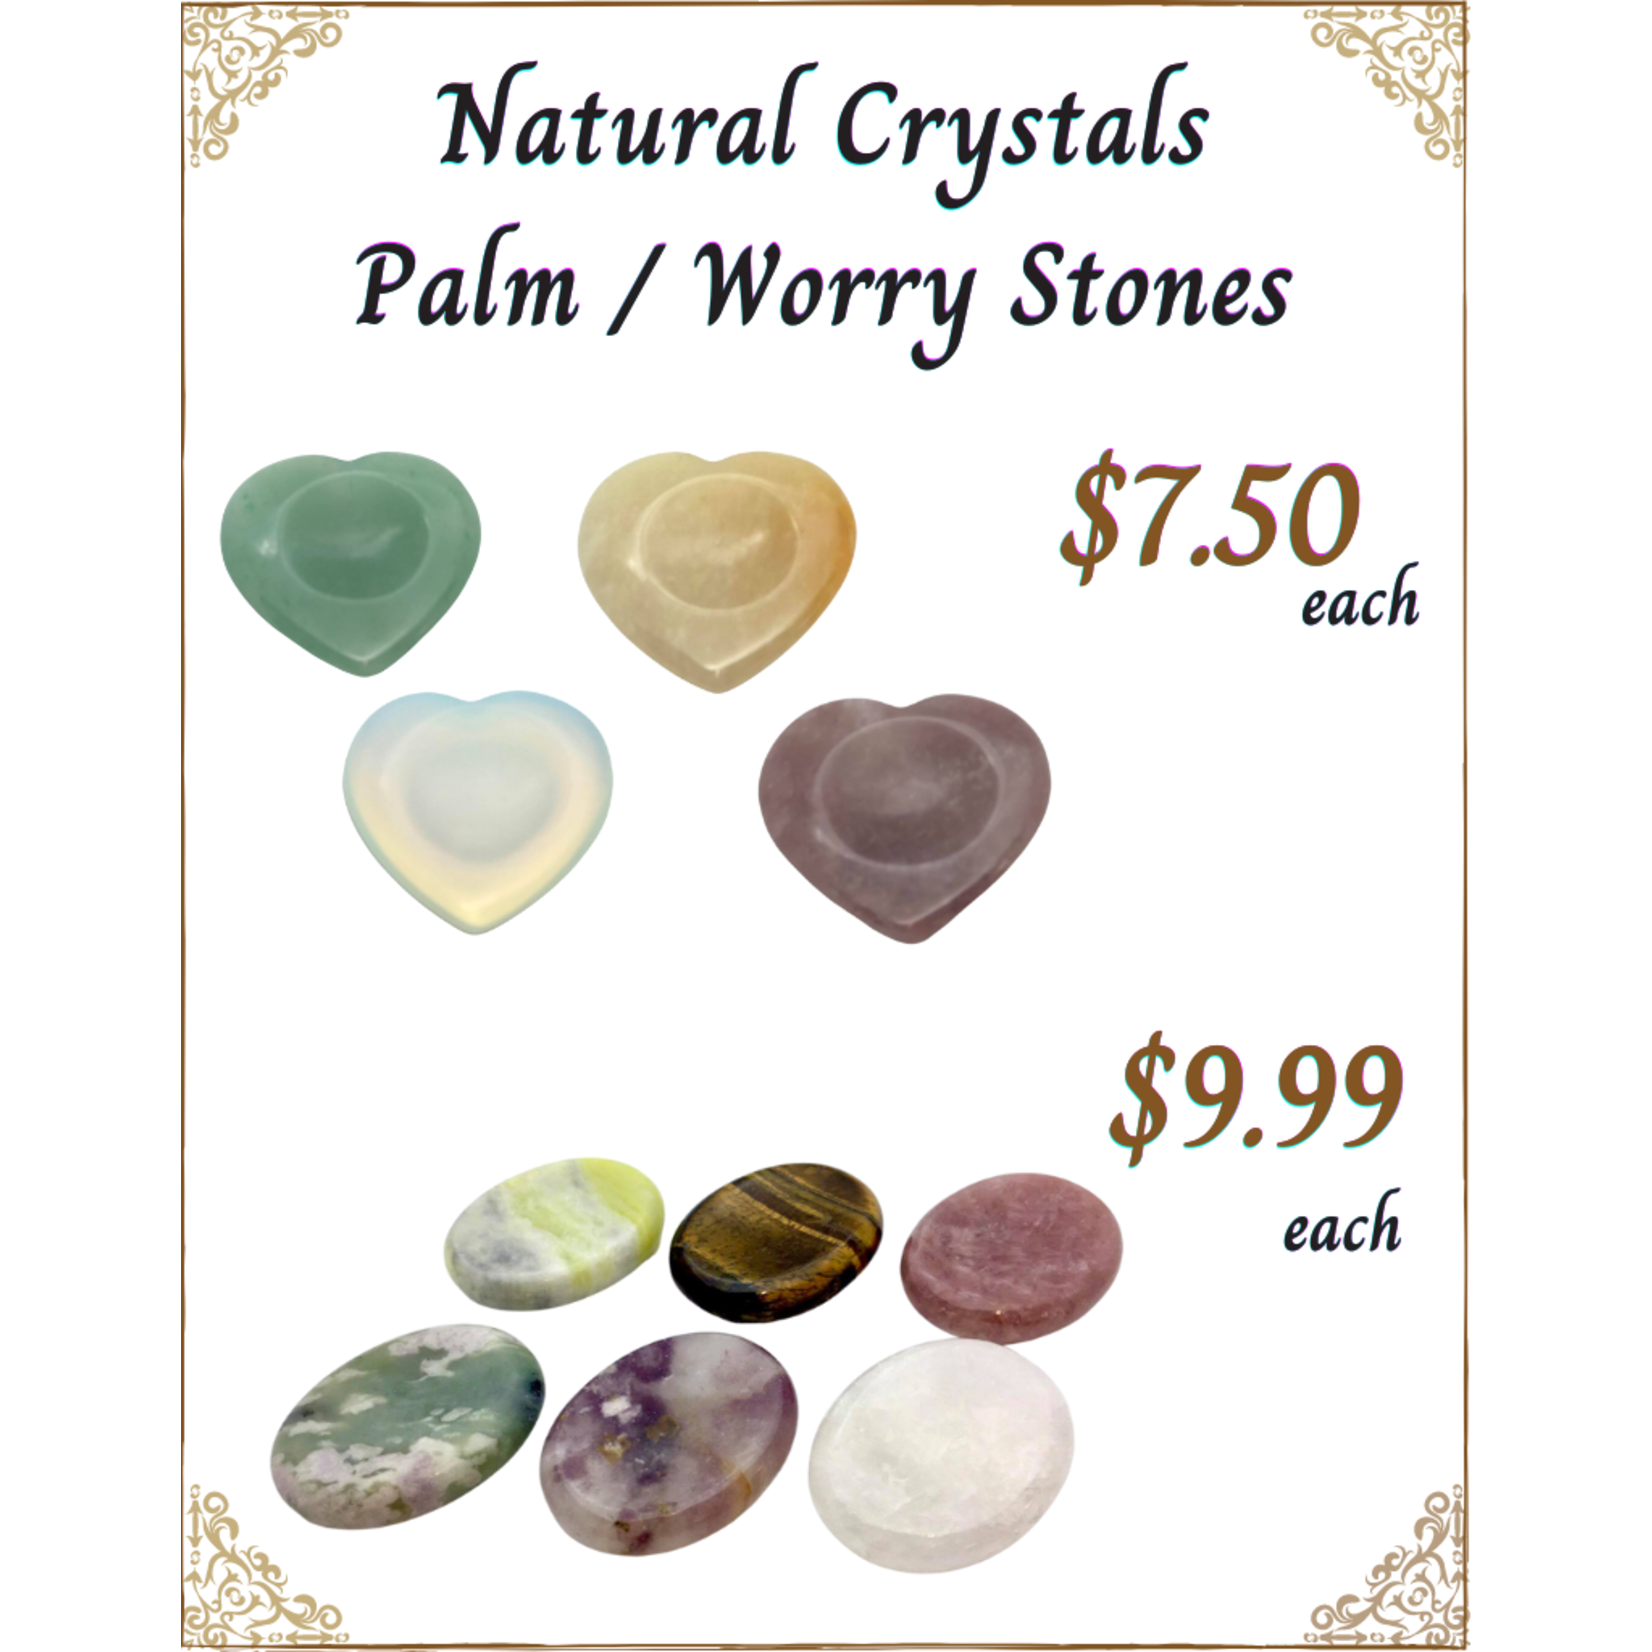 Natural Crystals Palm Worry Stones